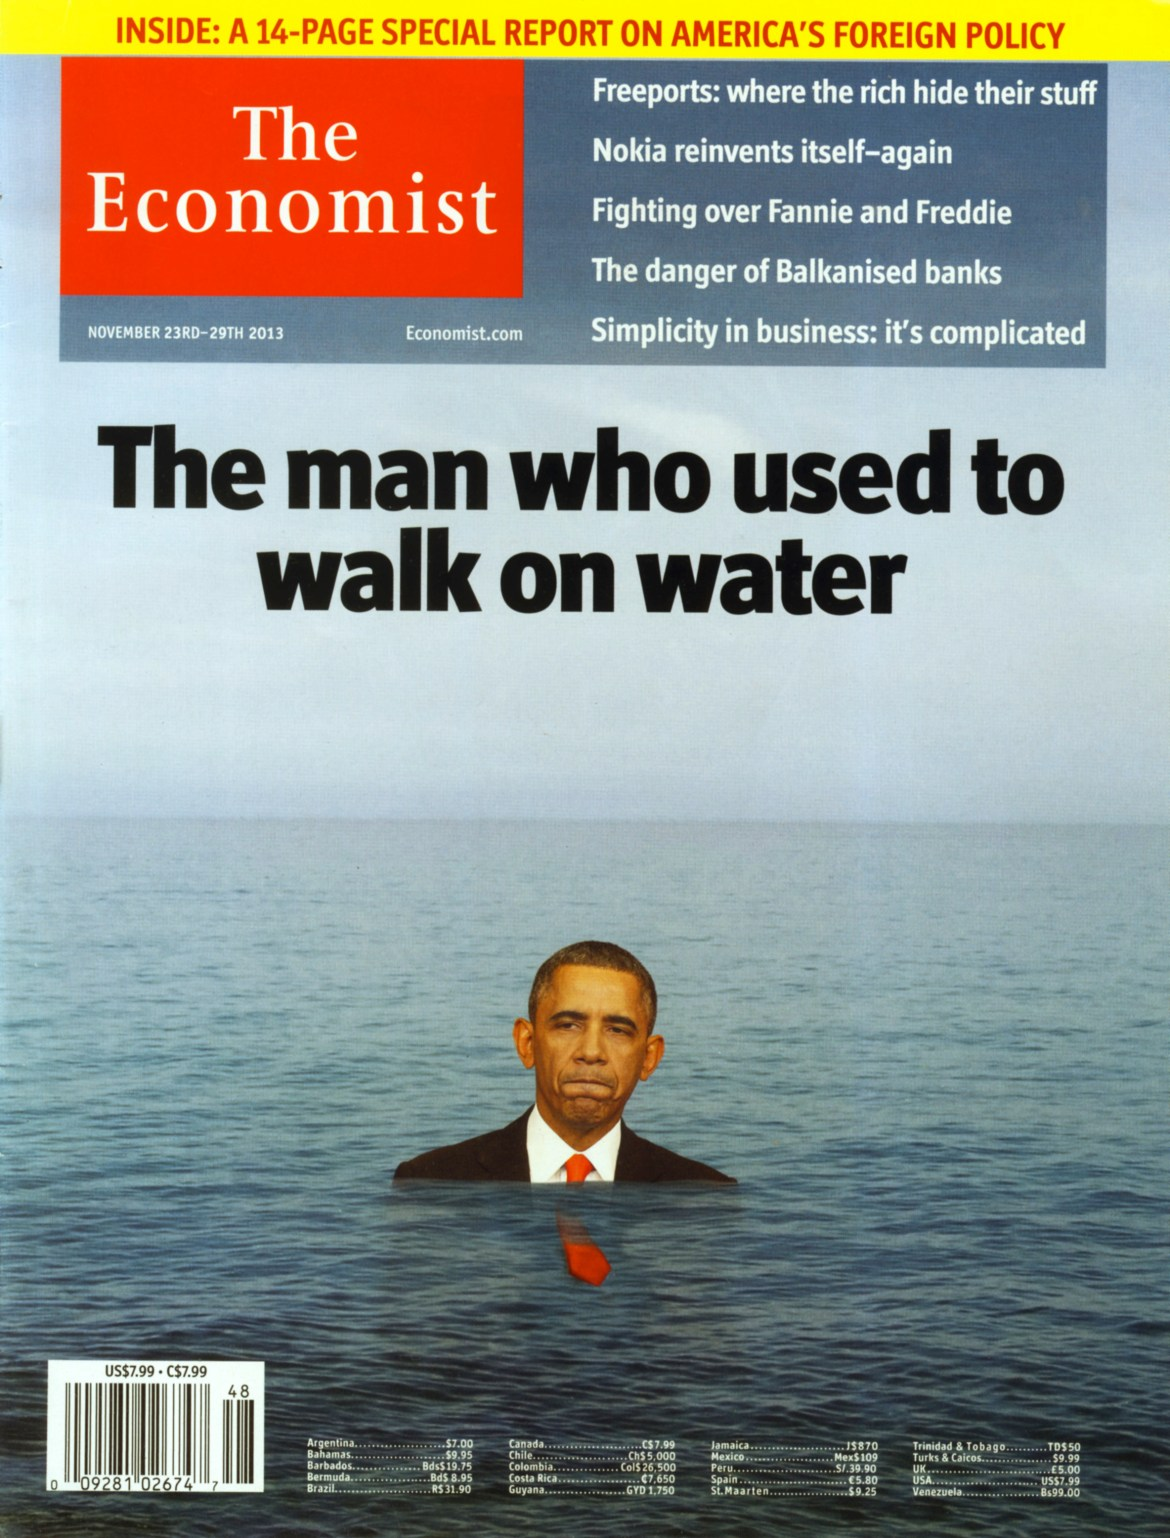 The Economist's November 29 2013 issue references the high expectations placed on the President